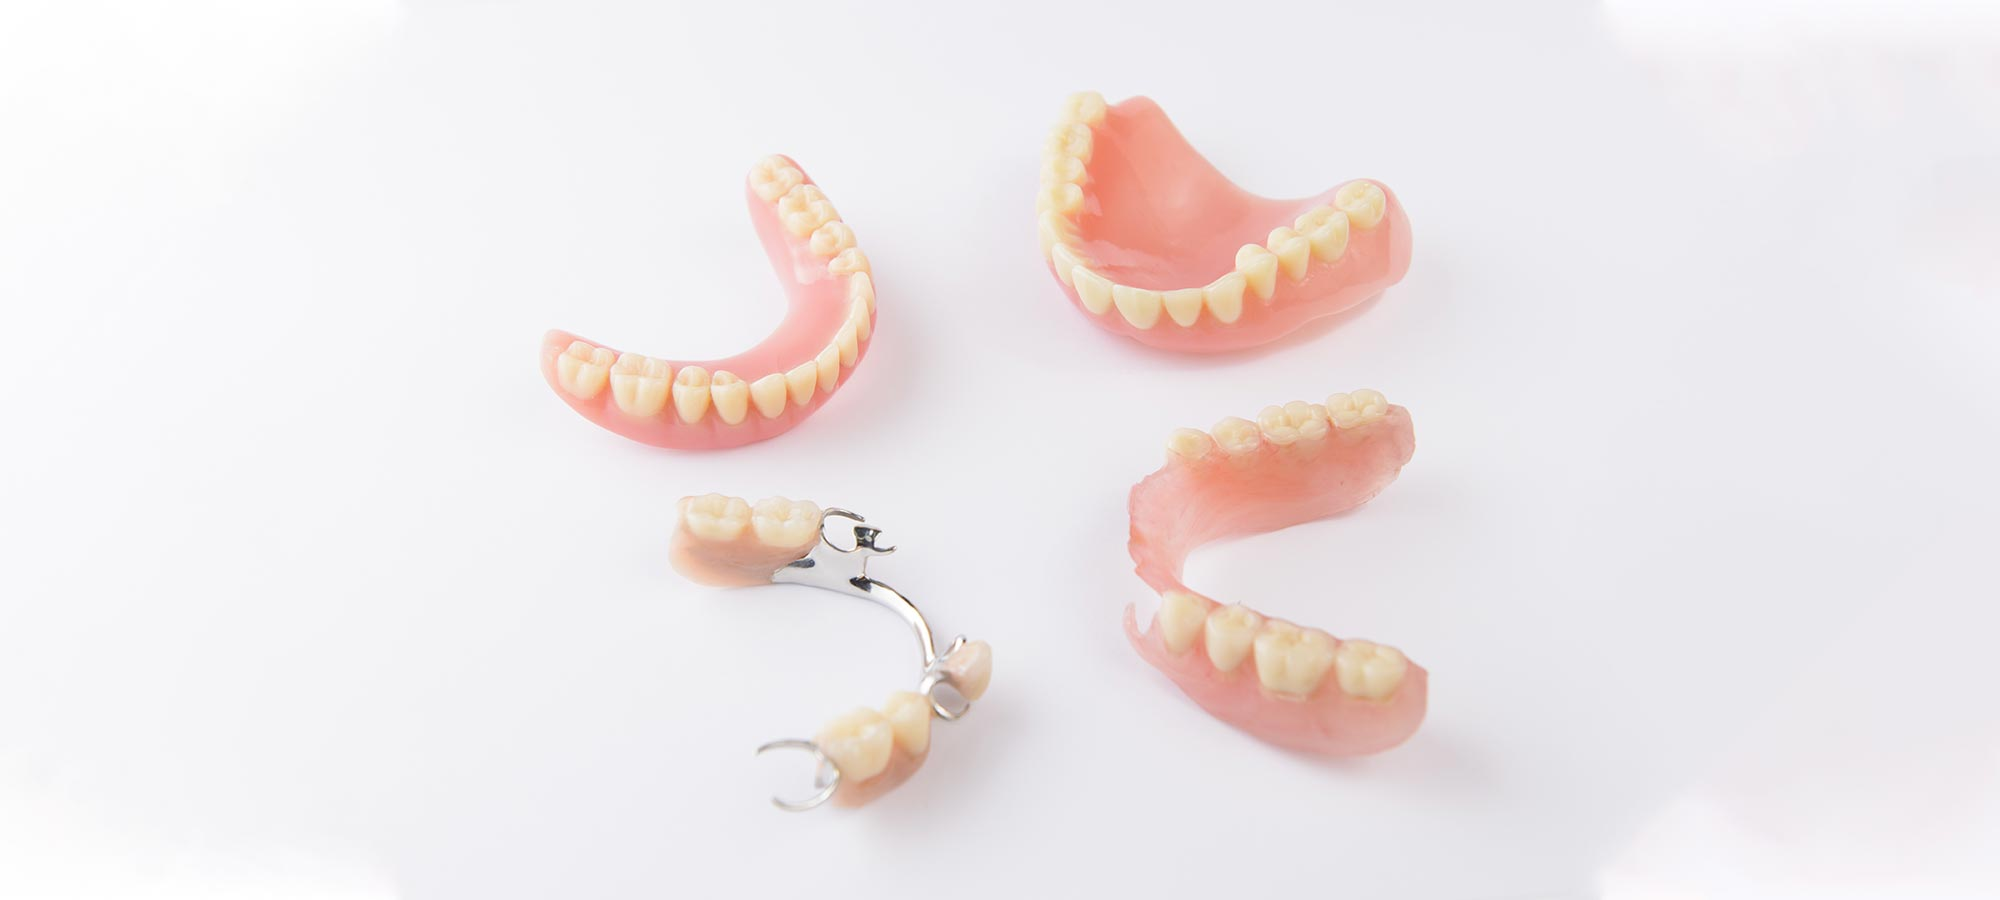 These are Not Just Dentures, these are 543 Dentures!